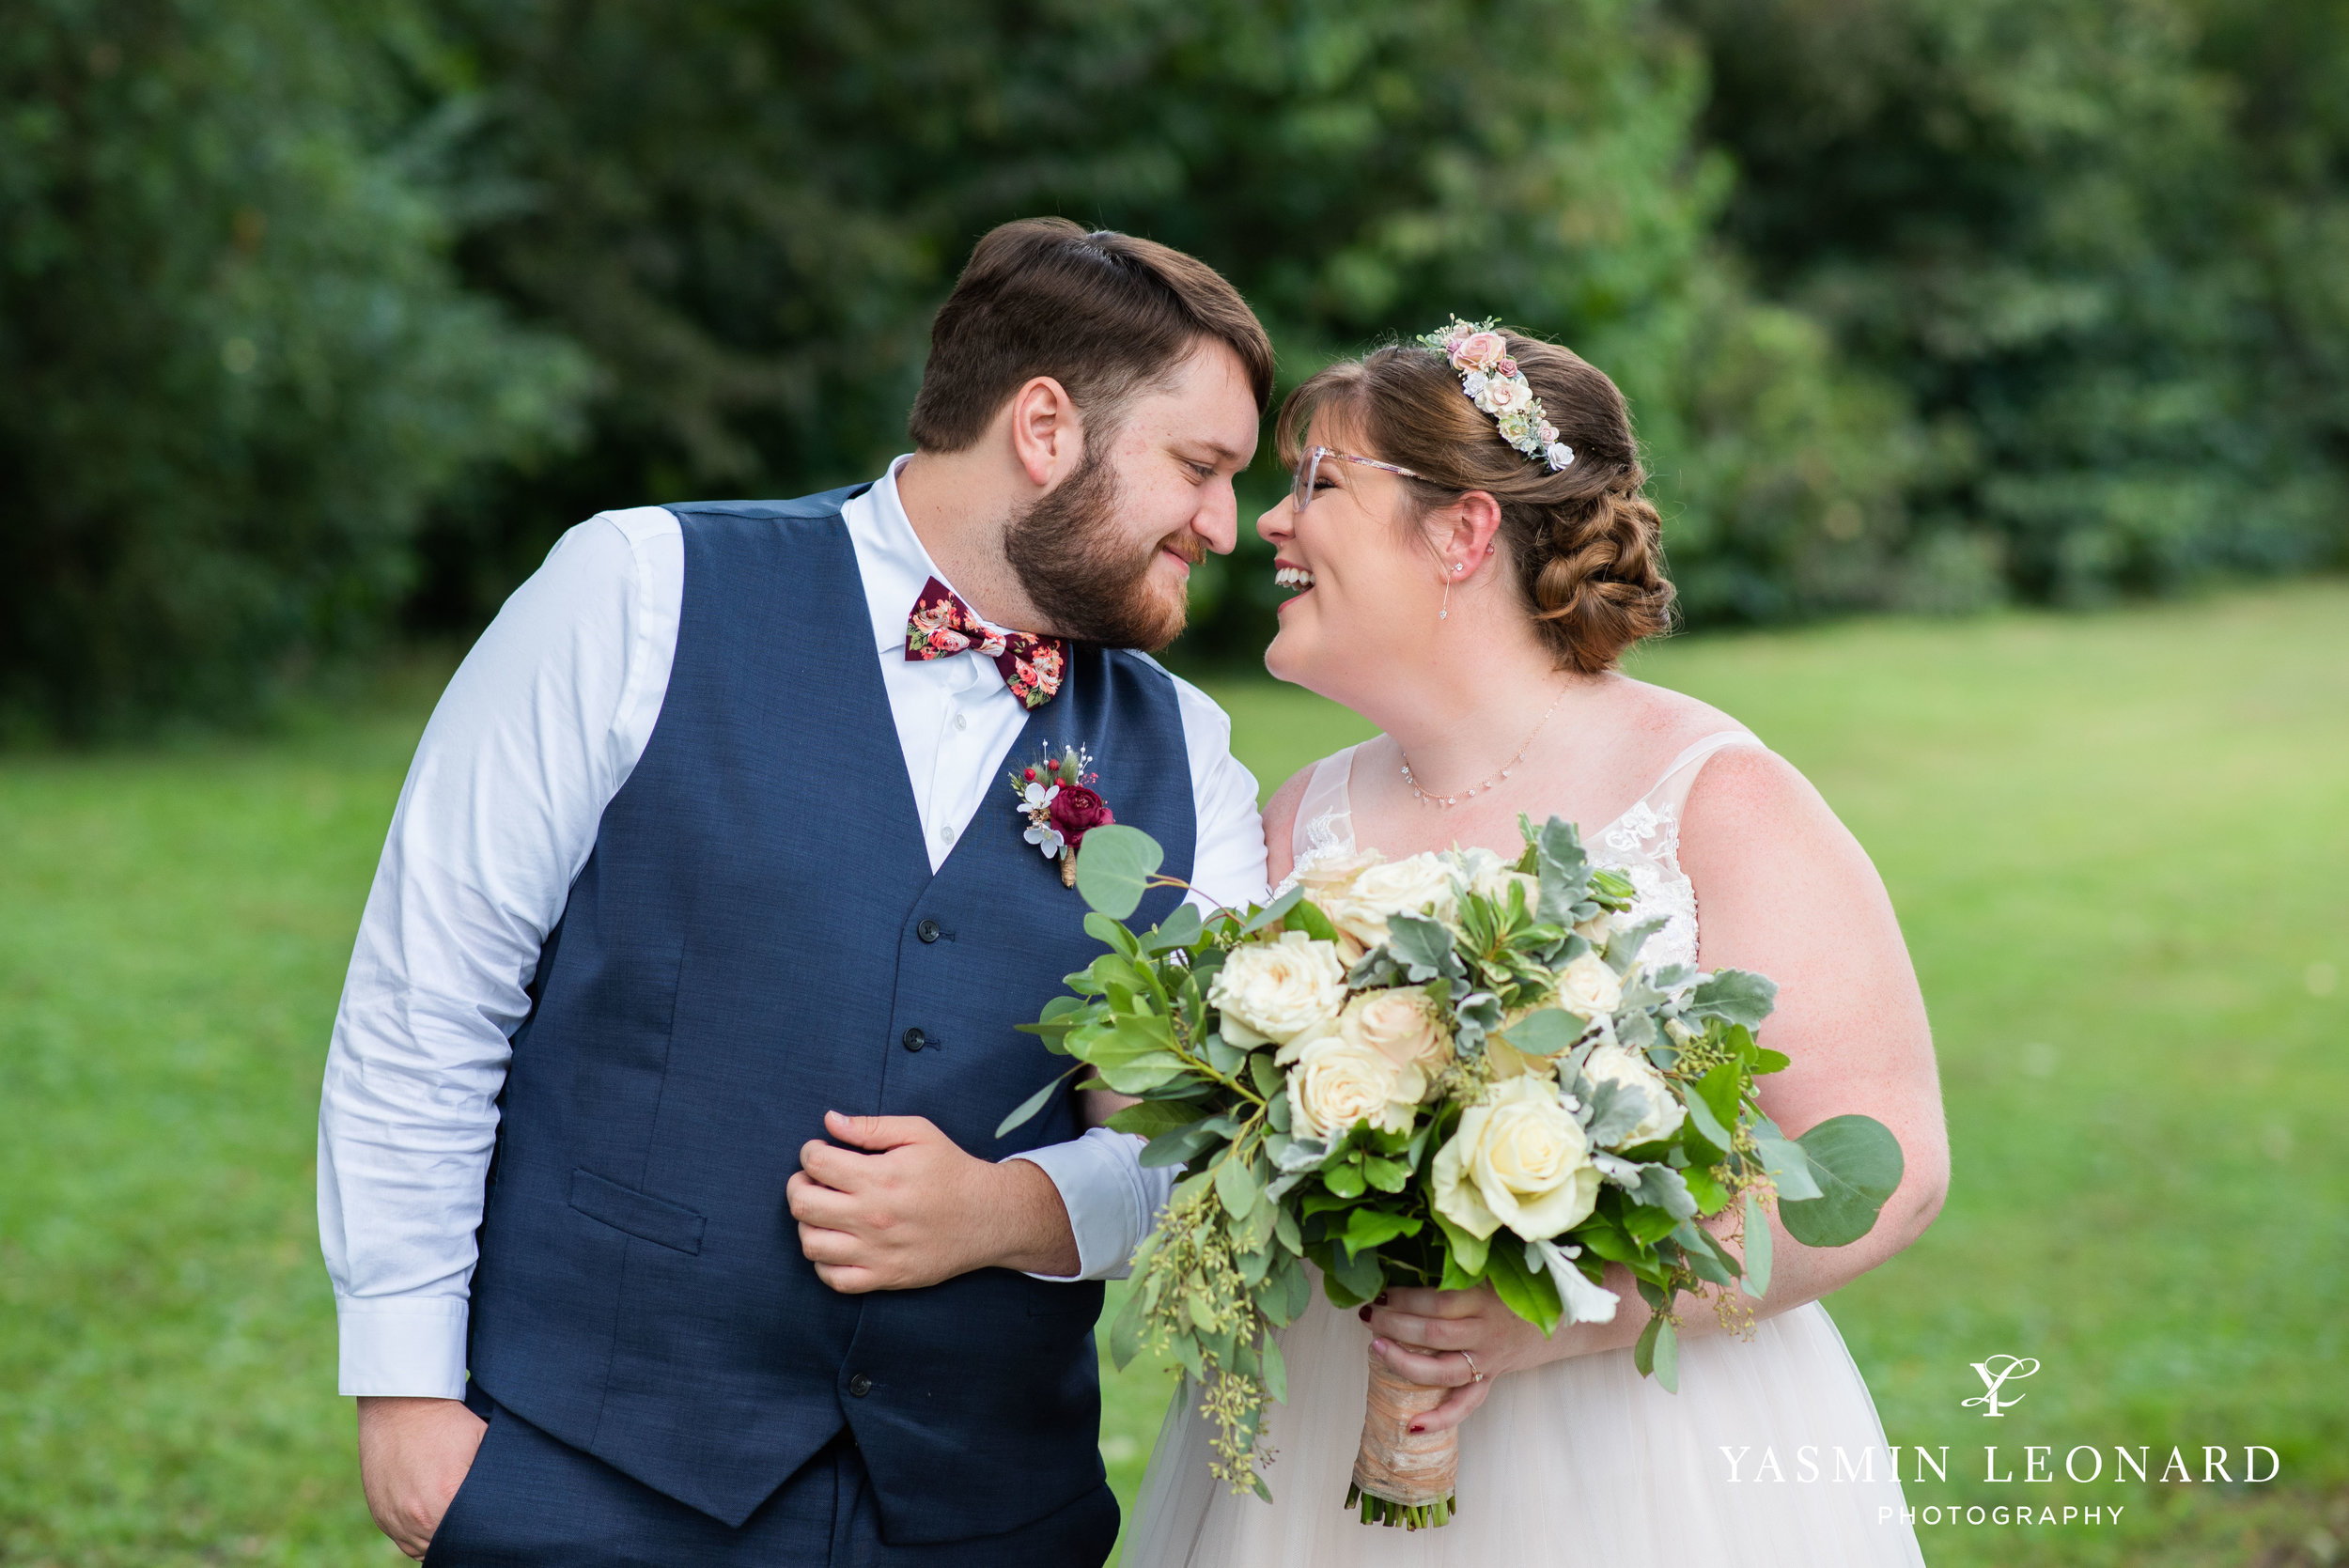 Hannah and David - l'abri at Linwood - NC Barn Weddings - Guys and Girls on Bride's Side - How to incorporate guys with bridesmaids - navy fall wedding - high point photographer - nc wedding venues - triad weddings-15.jpg